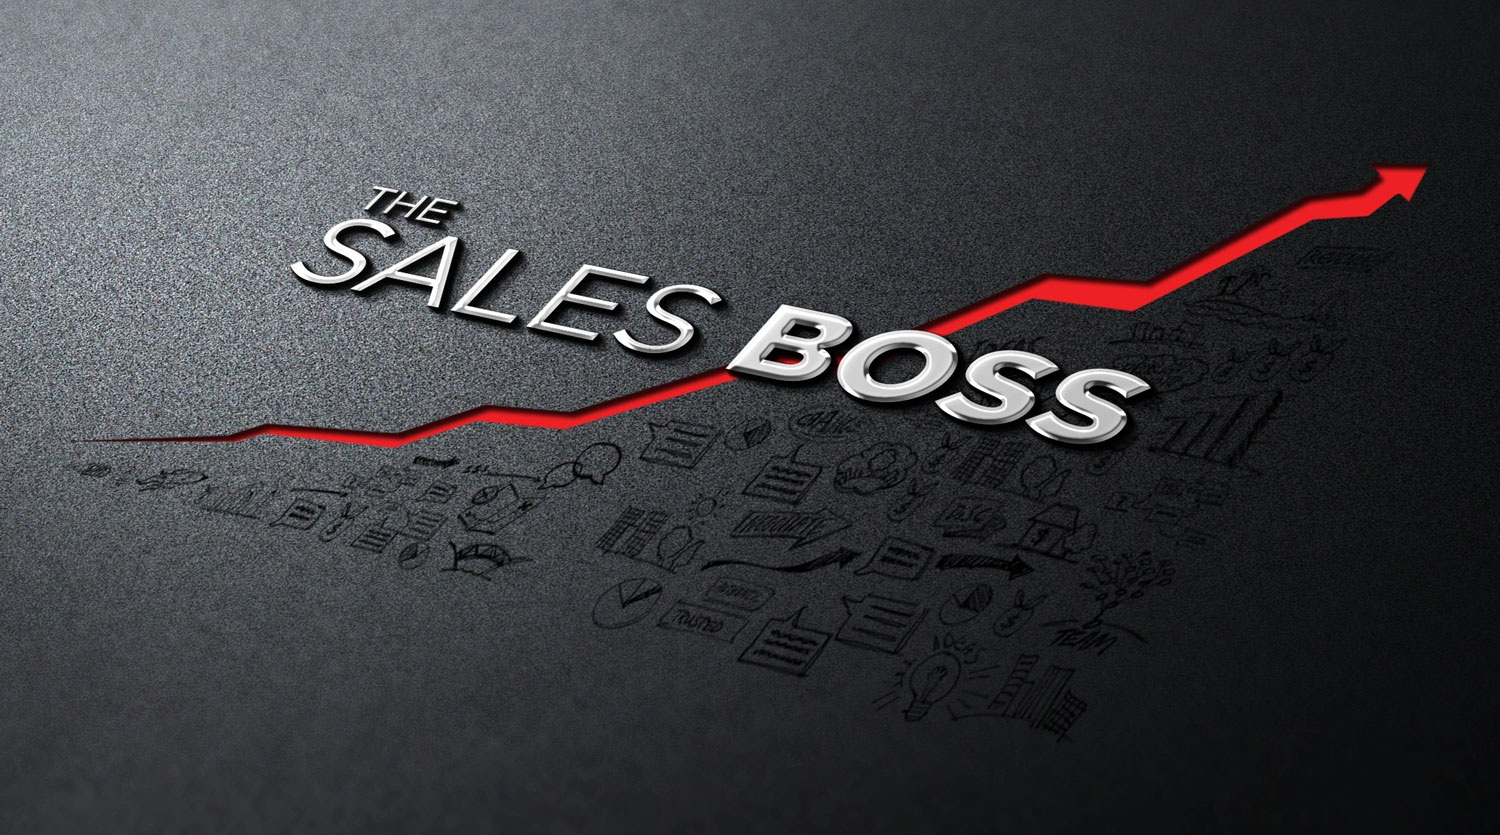 Sales-Boss-Metallic-Badge-mockup.jpg